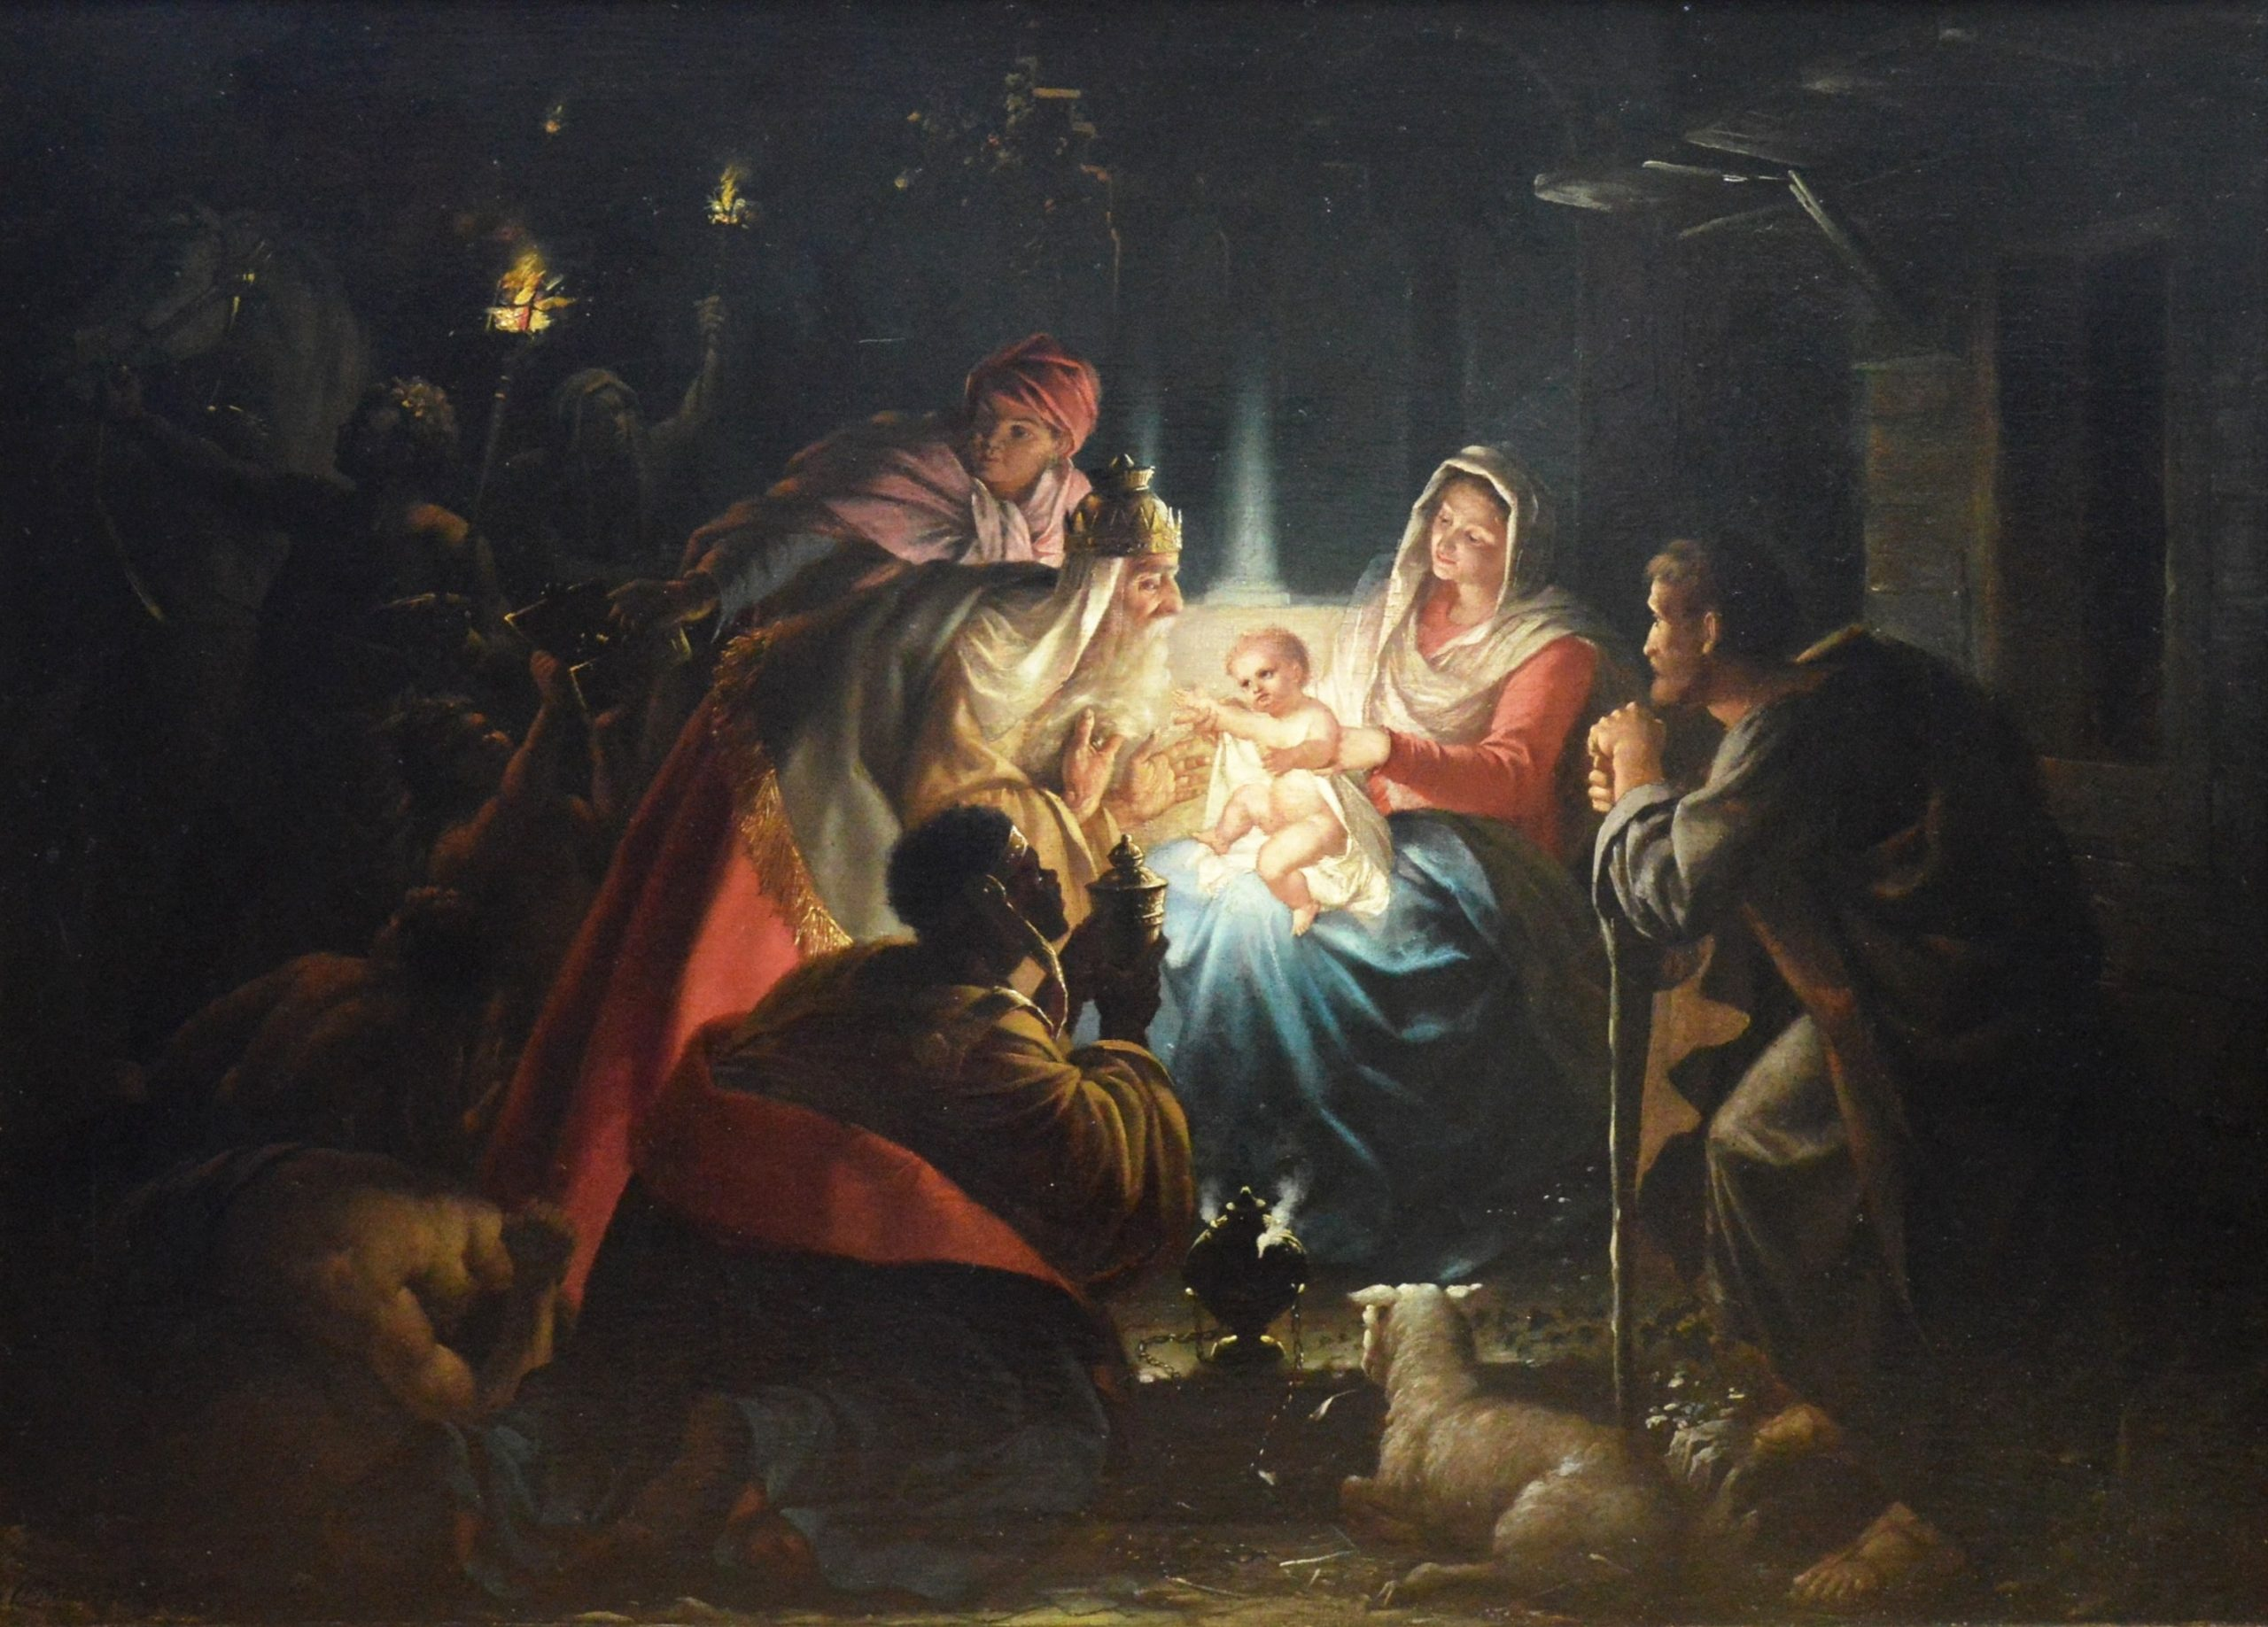 The Adoration of the Magi - 19th Century Oil Painting of the Nativity Image